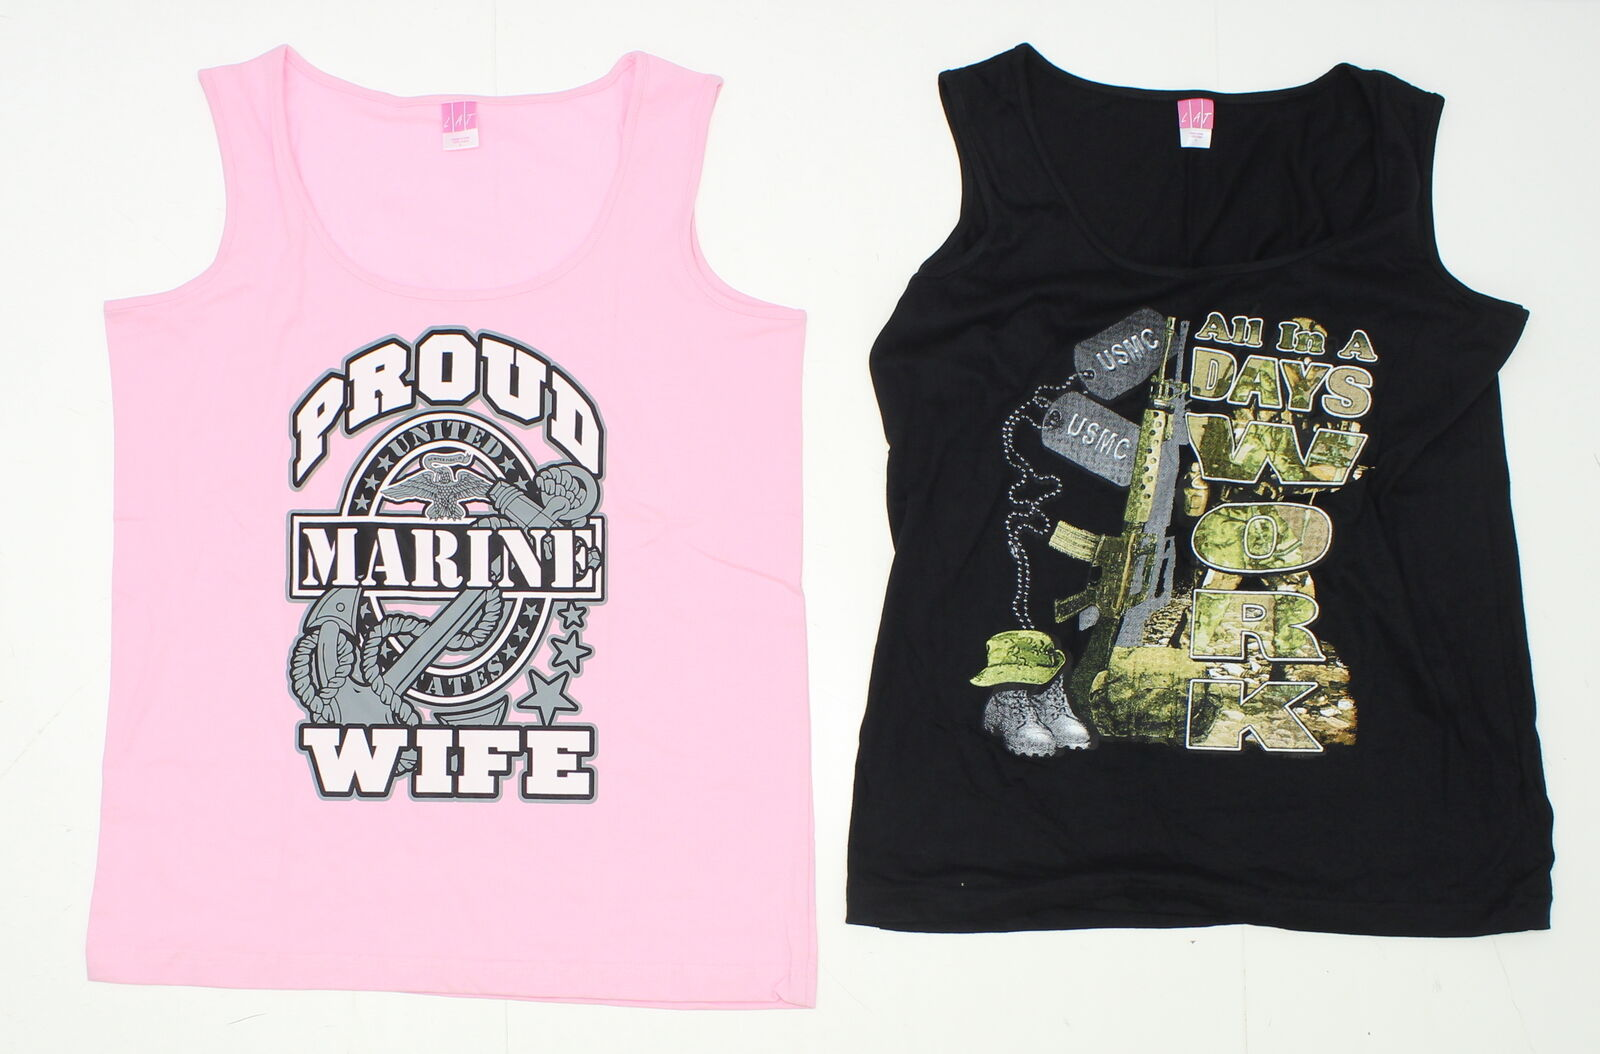 cc70a759be33ee NEW LAT Ladies LOT OF 2 Graphic Military Tank Tops Pink and Black ...